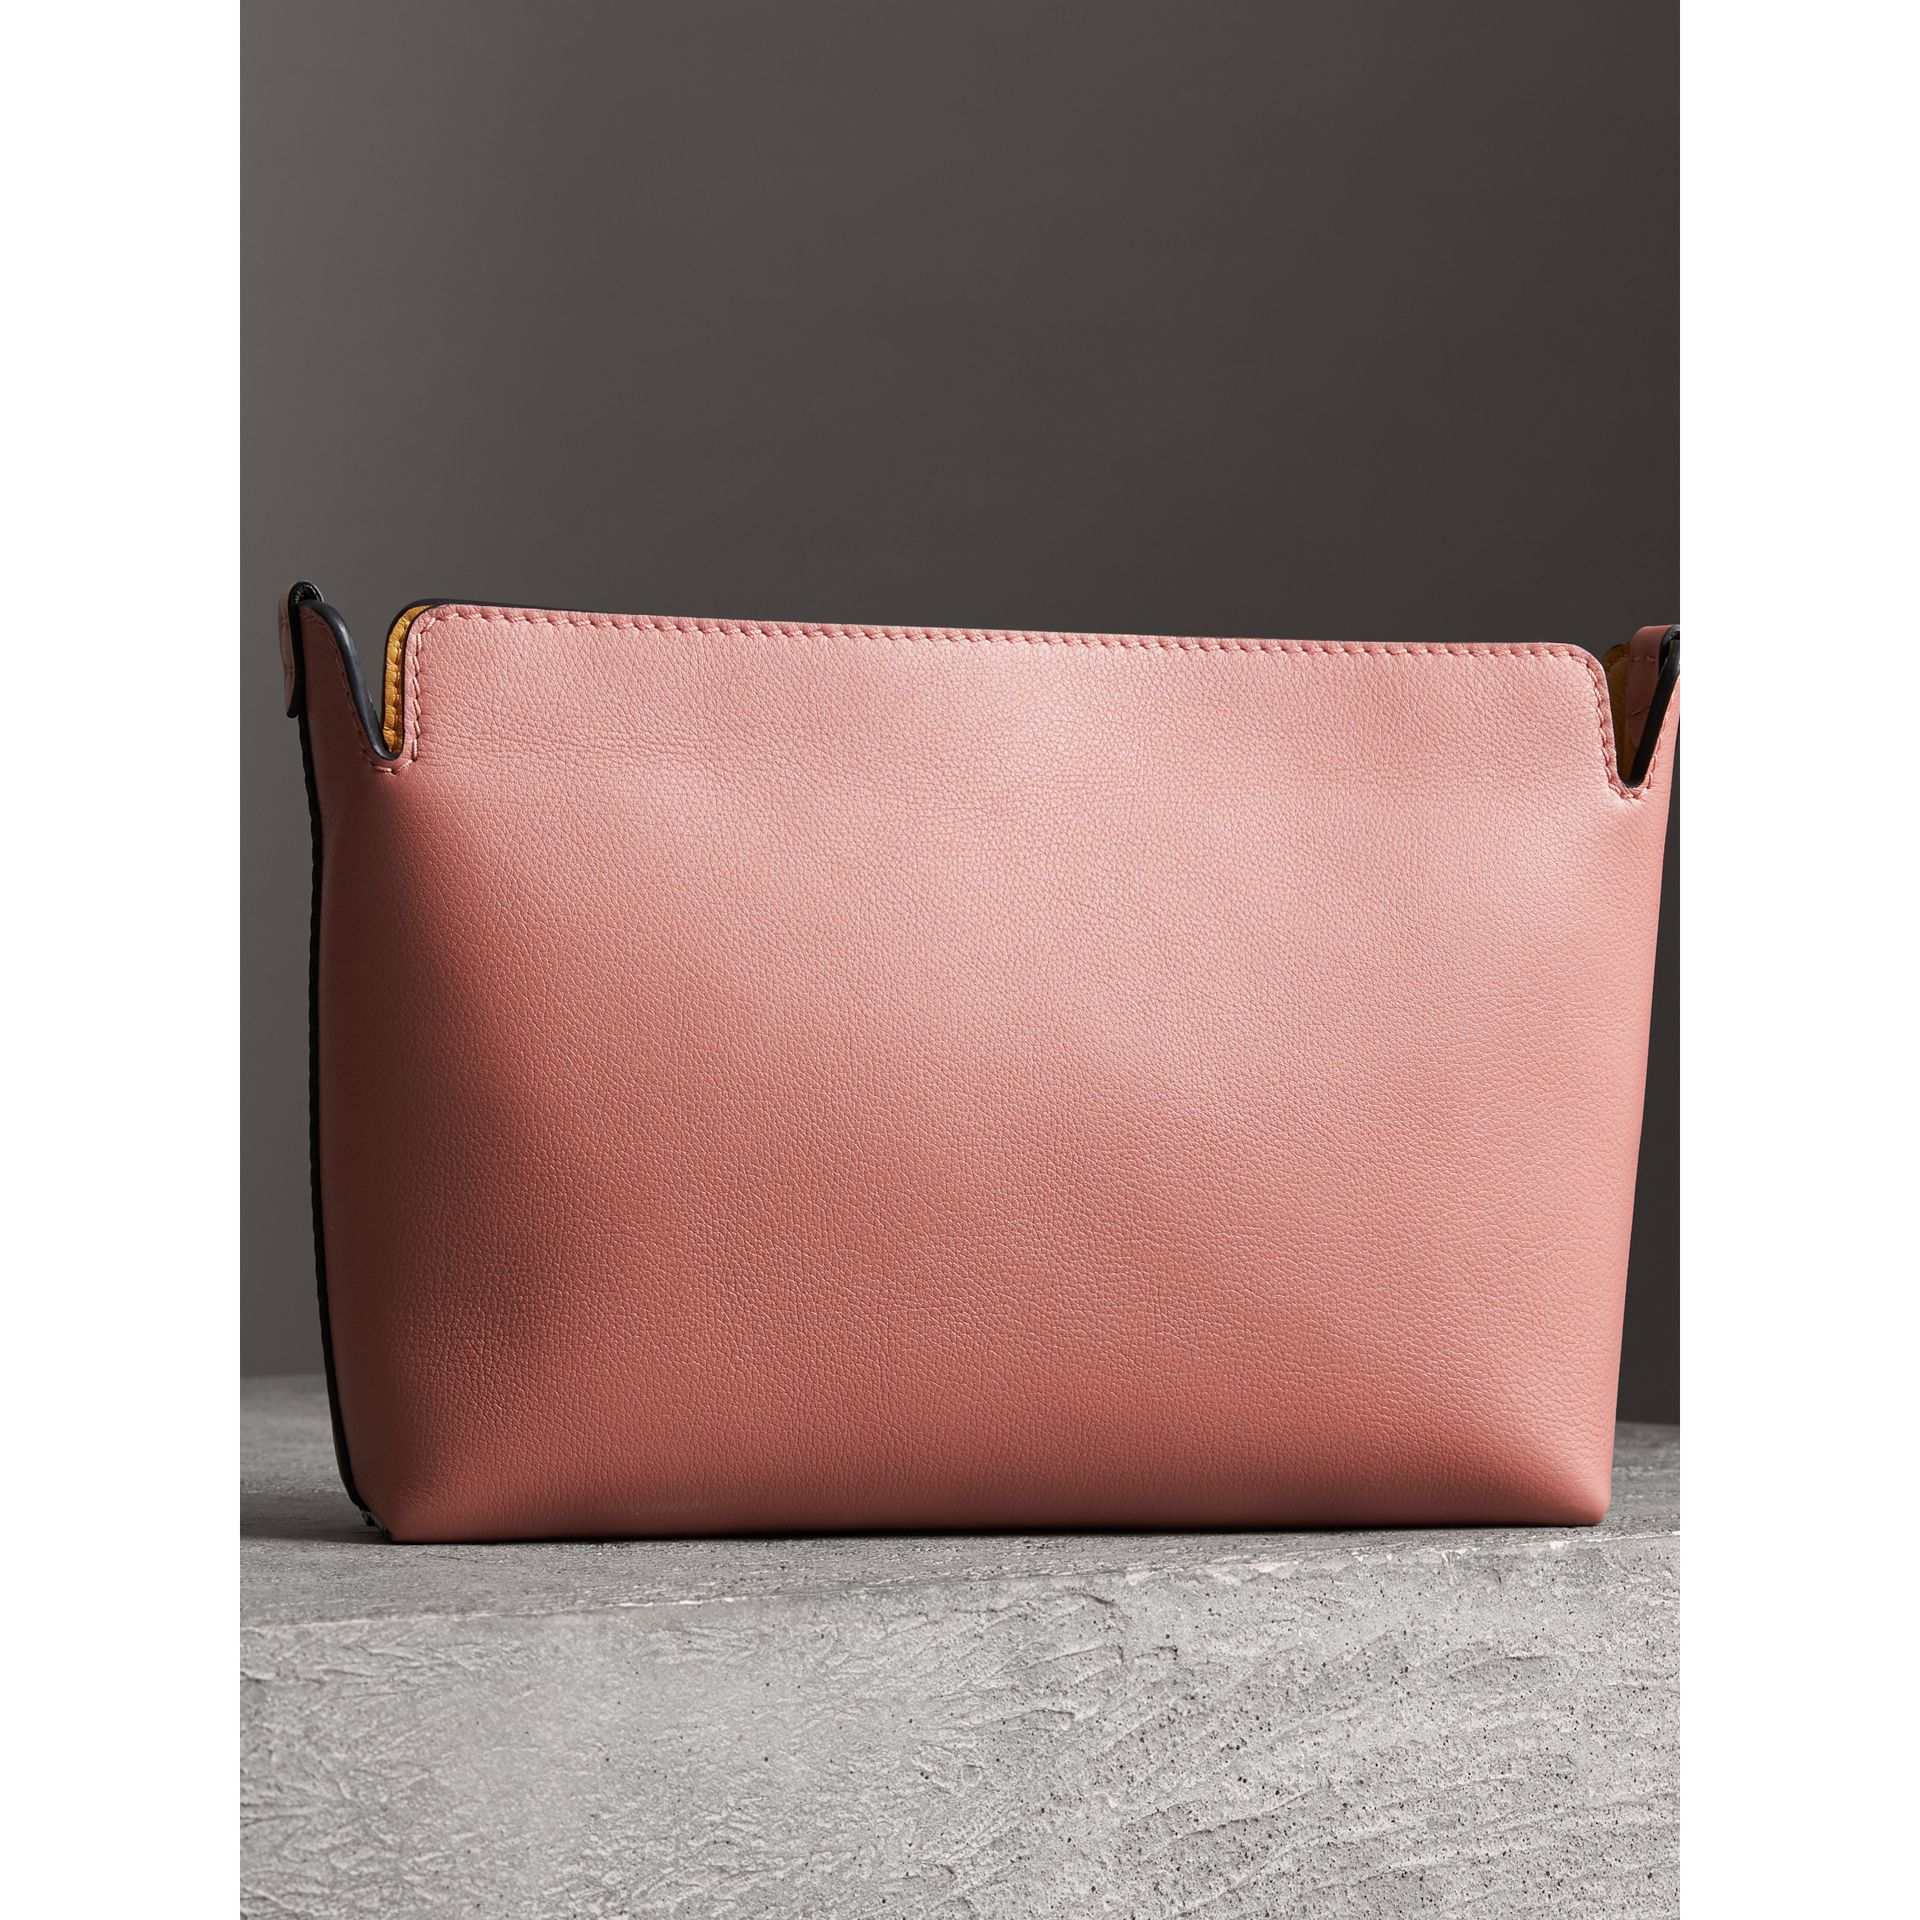 Medium Tri-tone Leather Clutch in Deep Claret/dusty Rose - Women | Burberry - gallery image 4